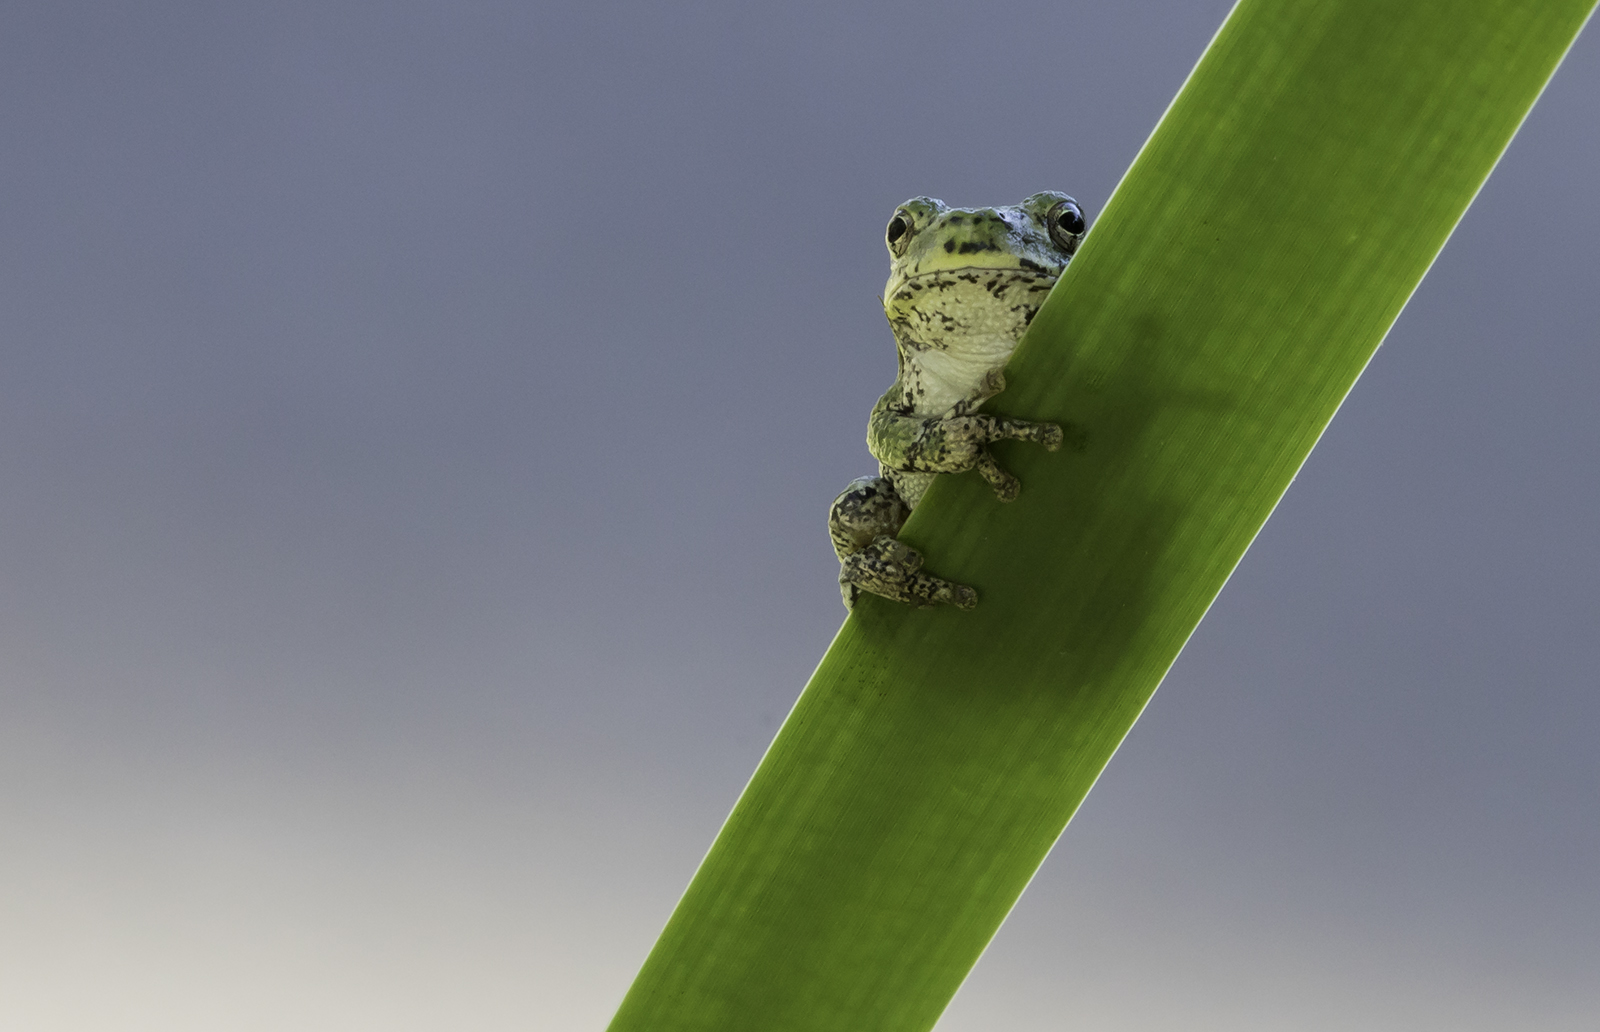 A tree frog clings to a blade of grass